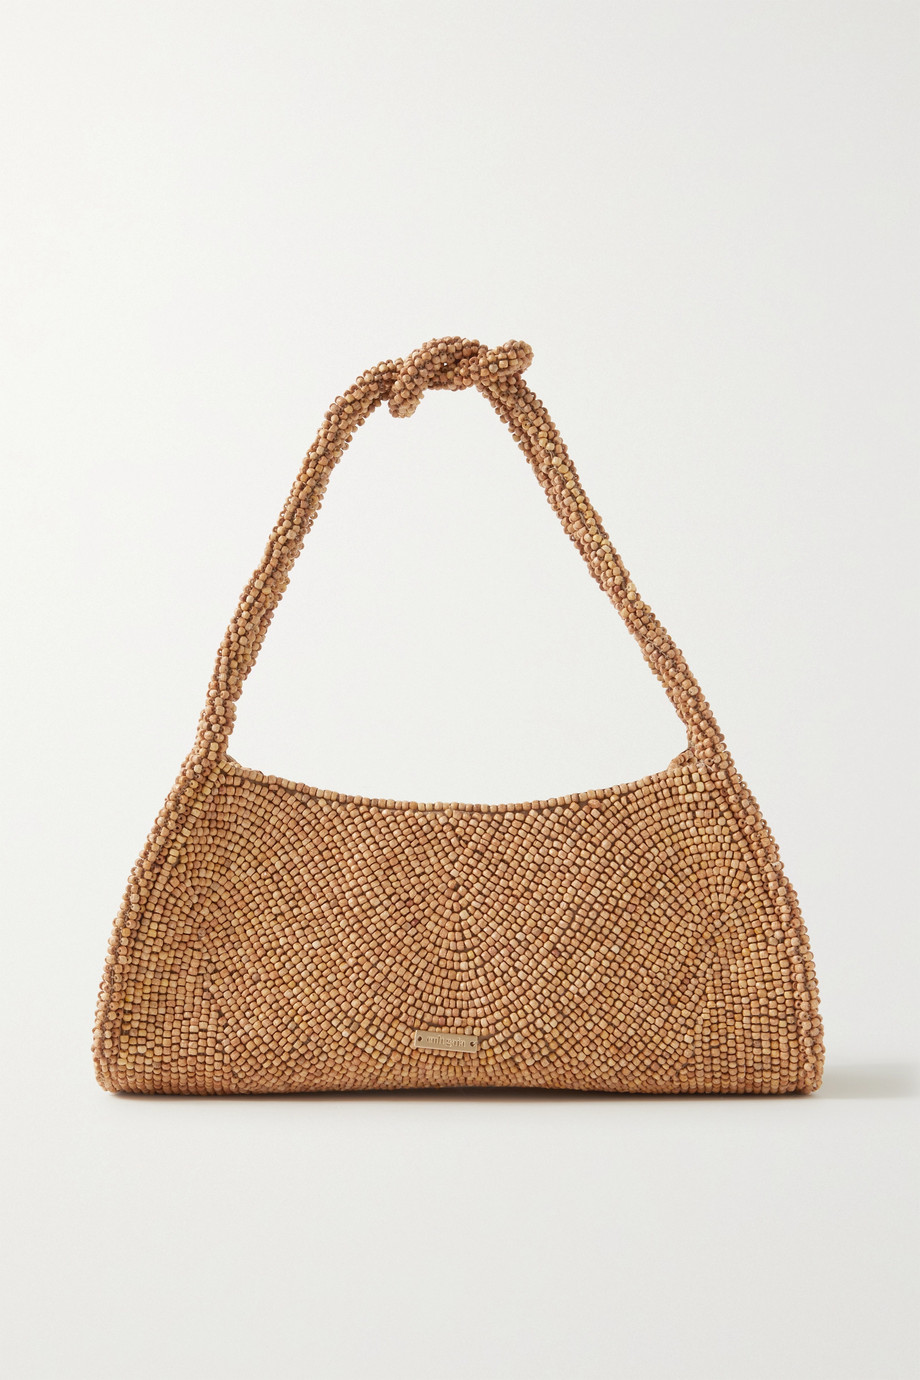 Cult Gaia Tala beaded vegan suede shoulder bag